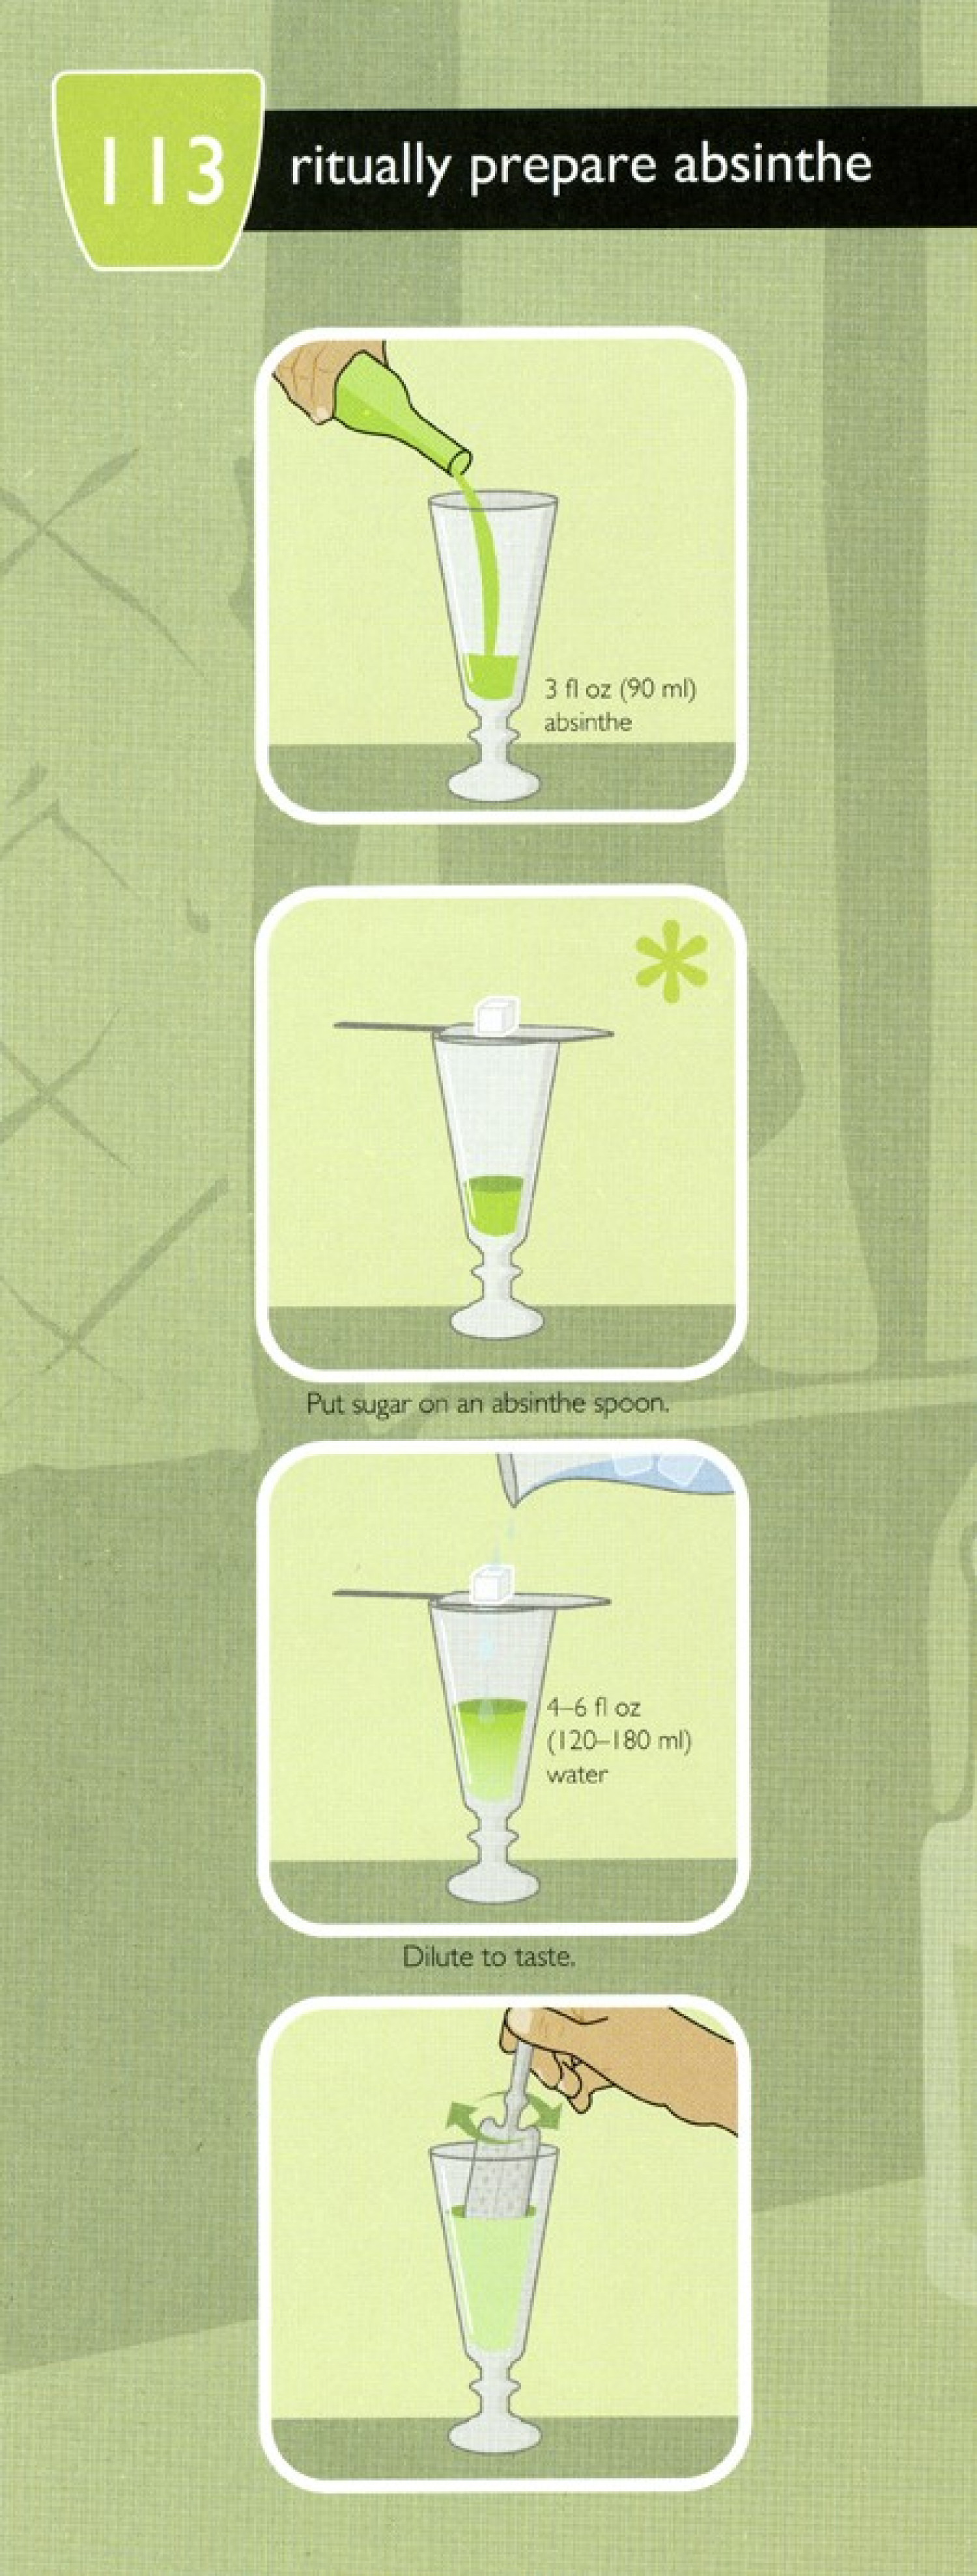 How to Prepare Absinthe Infographic